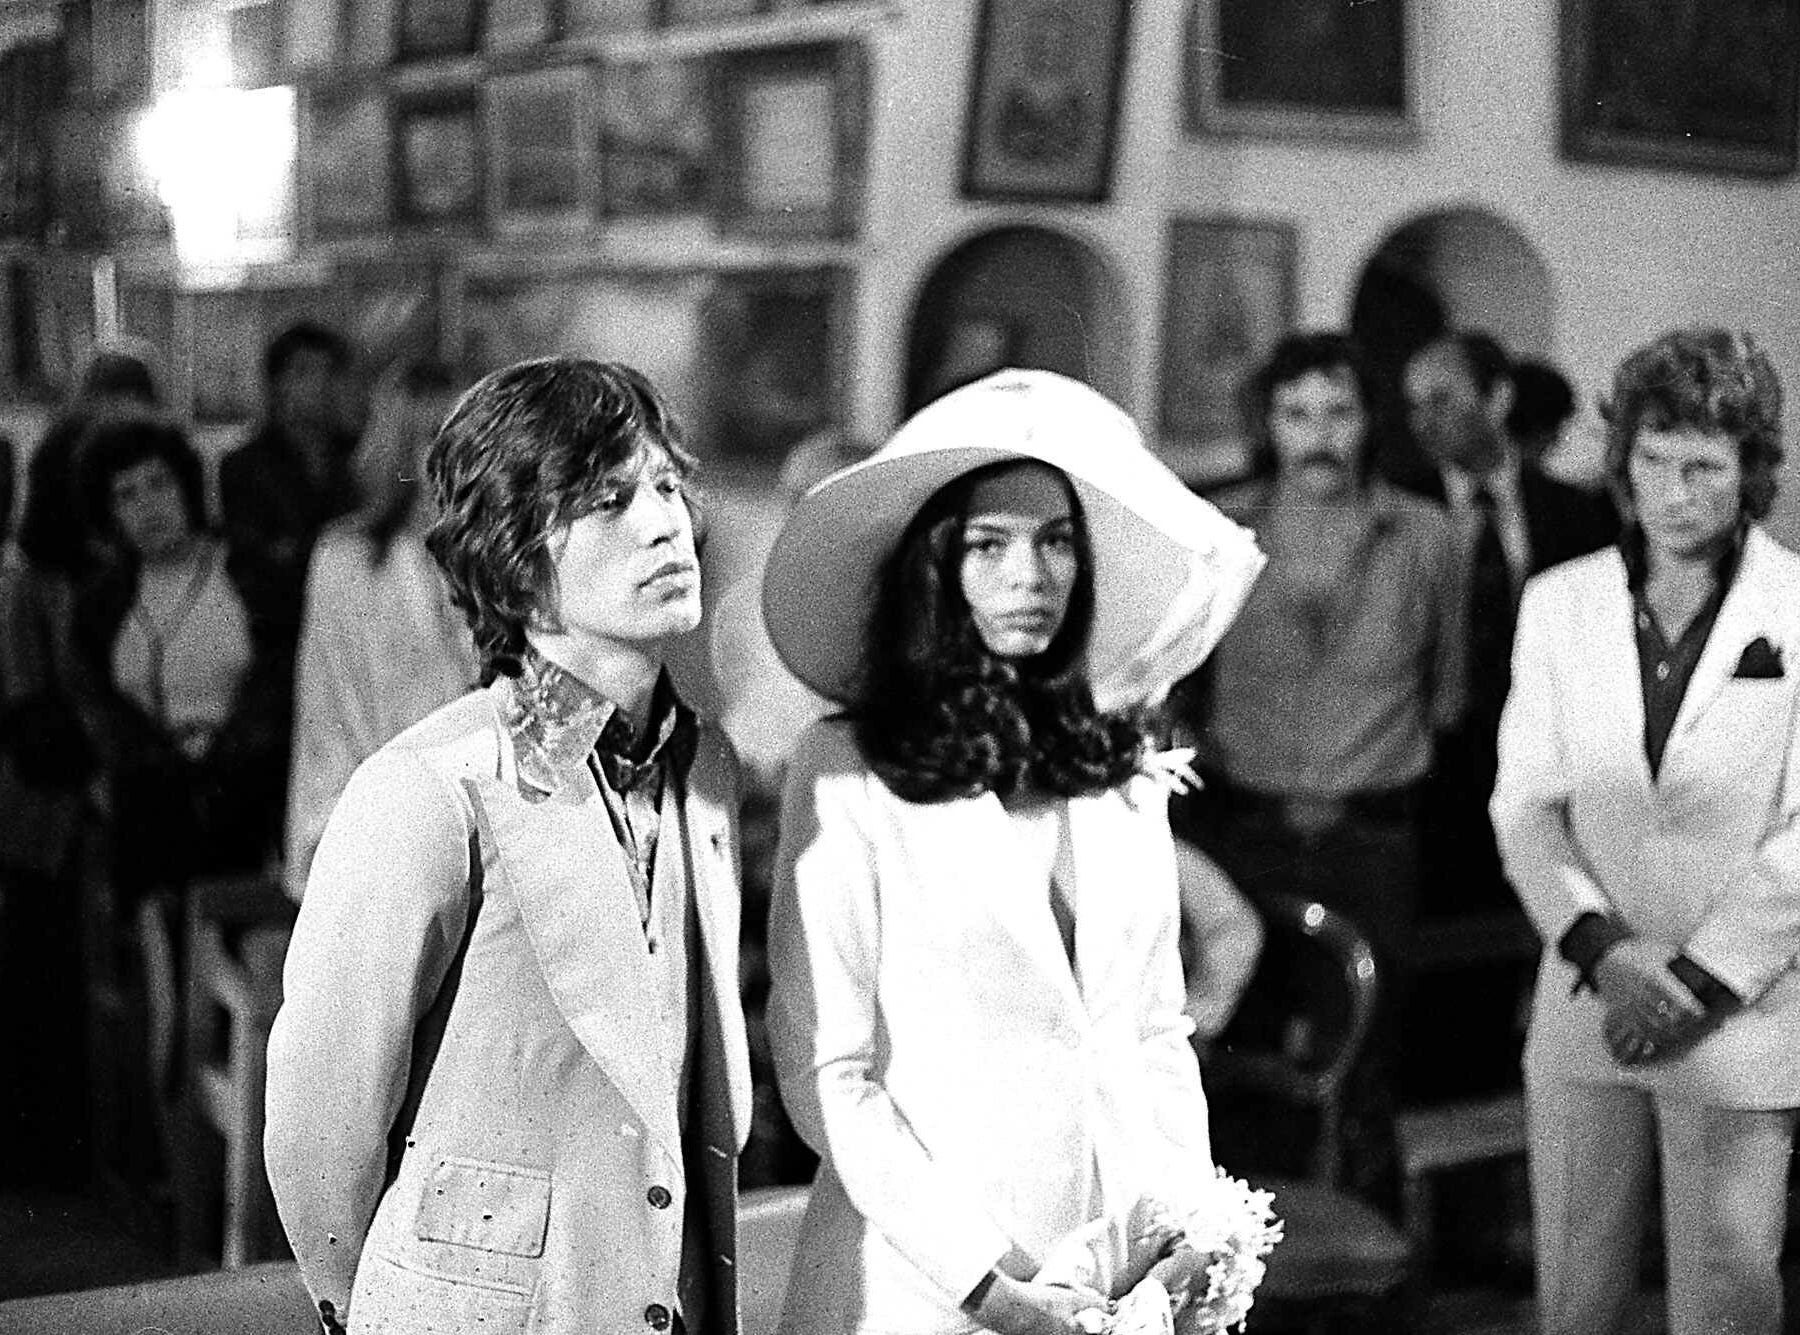 Rolling Stones singer, Mick Jagger and his bride, Bianca Perez-Mora Macias, are shown during their wedding in the Sainte-Anne chapel in Saint Tropez, on May 12, 1971.  (AP Photo)